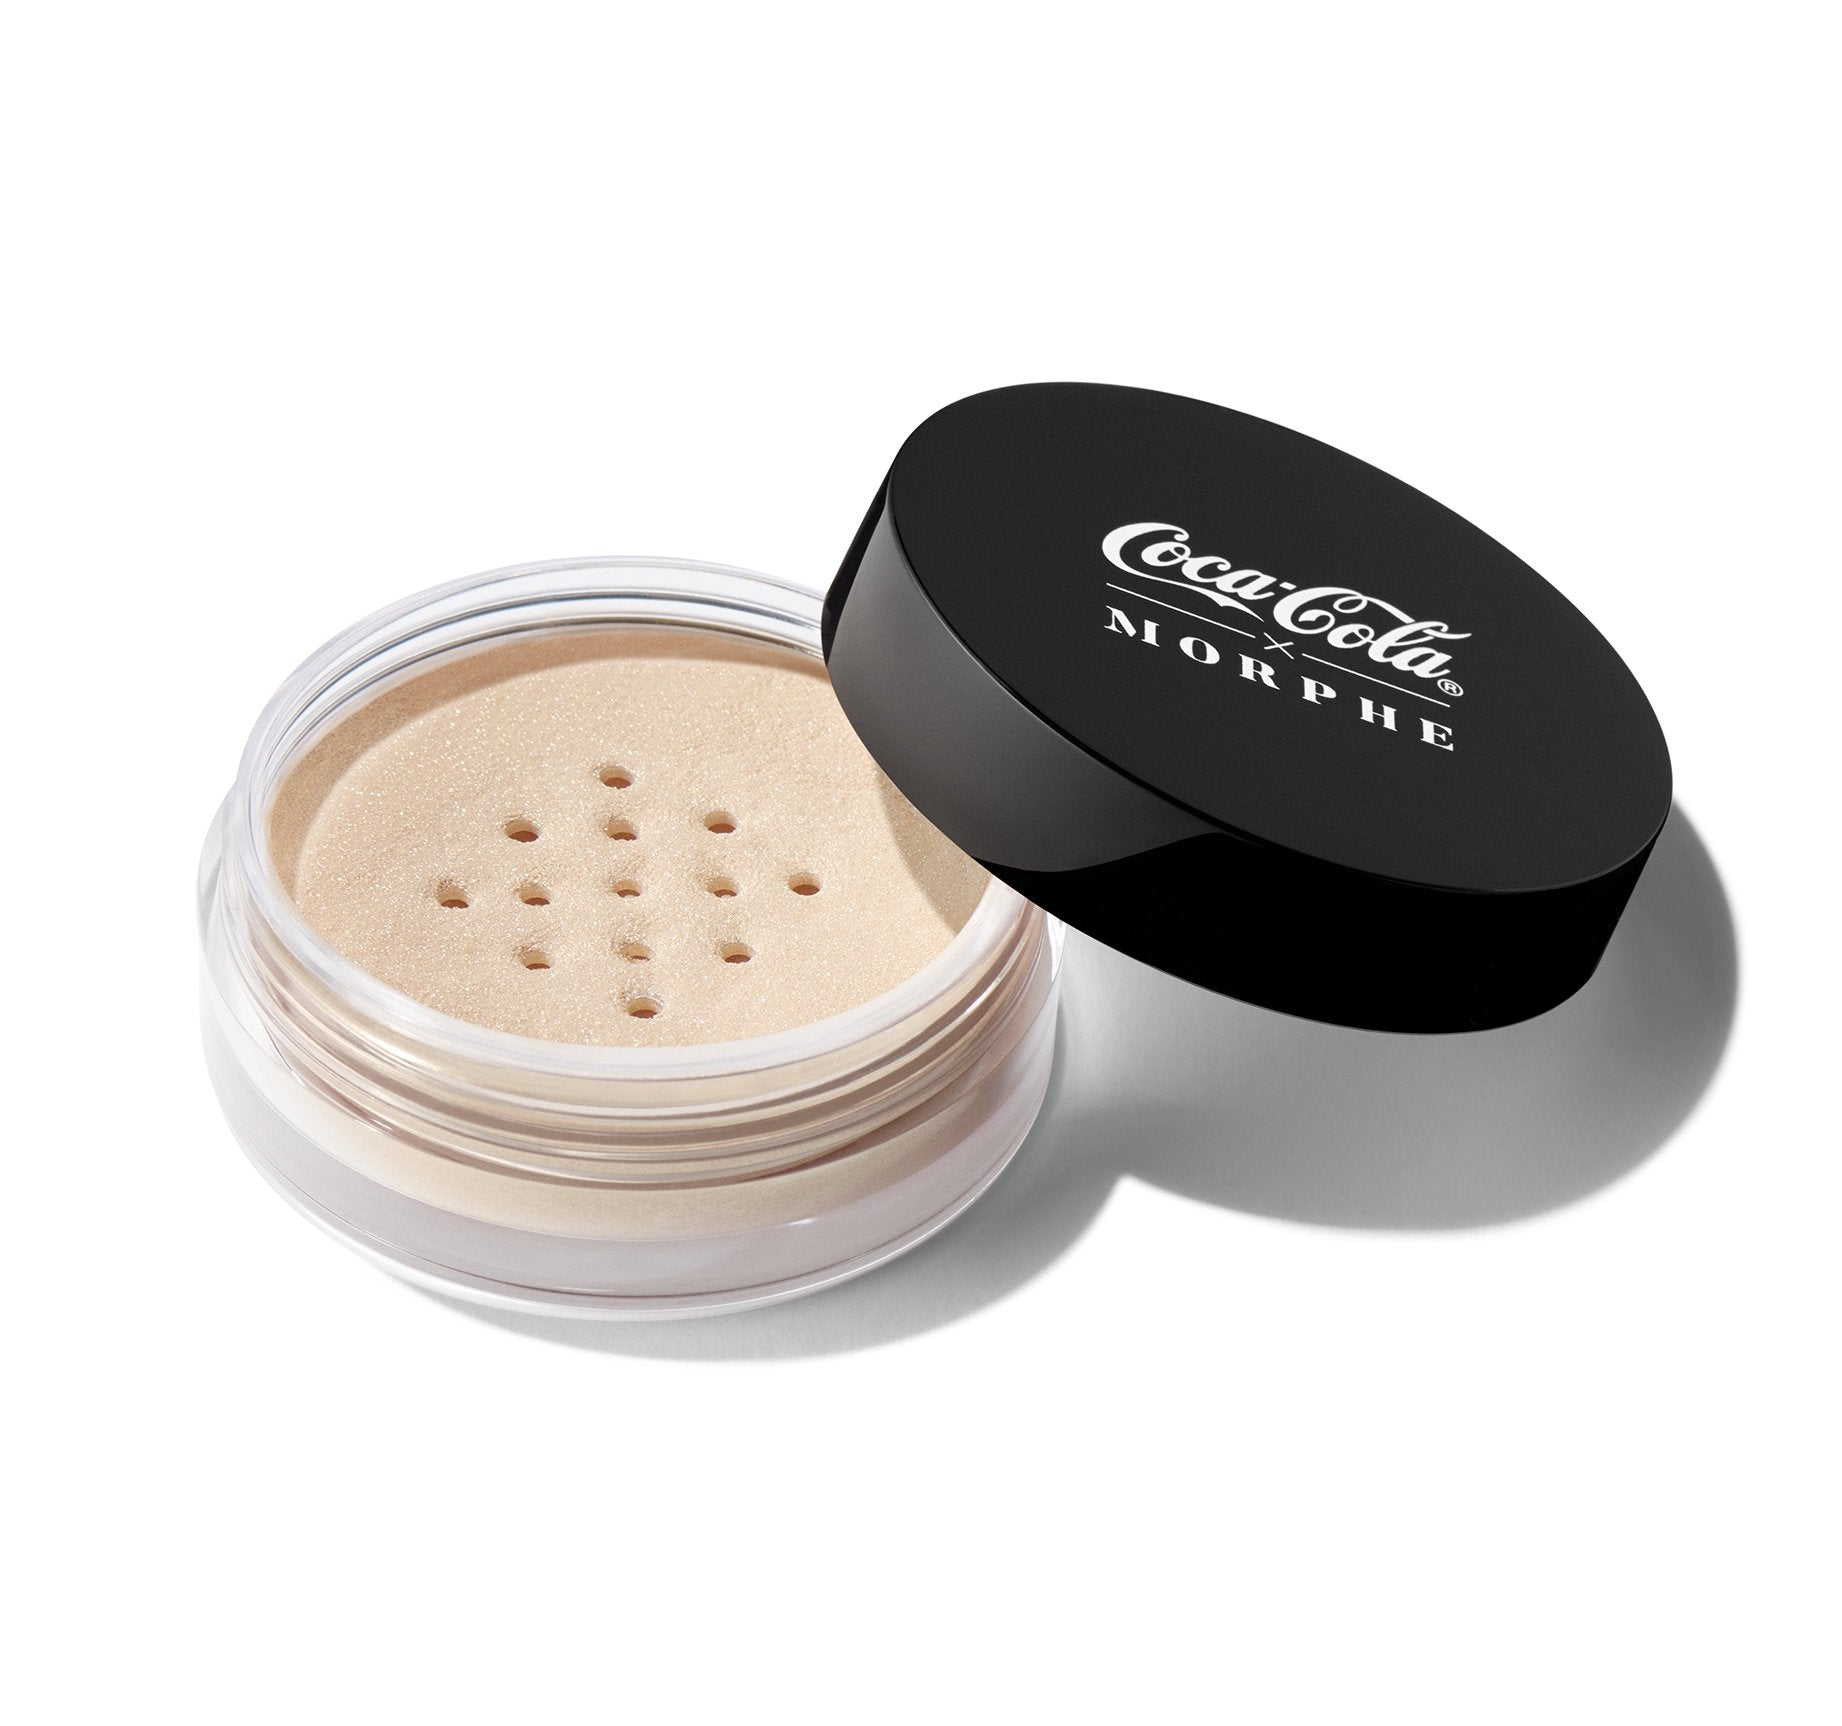 COCA-COLA X MORPHE GLOWING PLACES LOOSE HIGHLIGHTER - BUBBLY BABE, view larger image